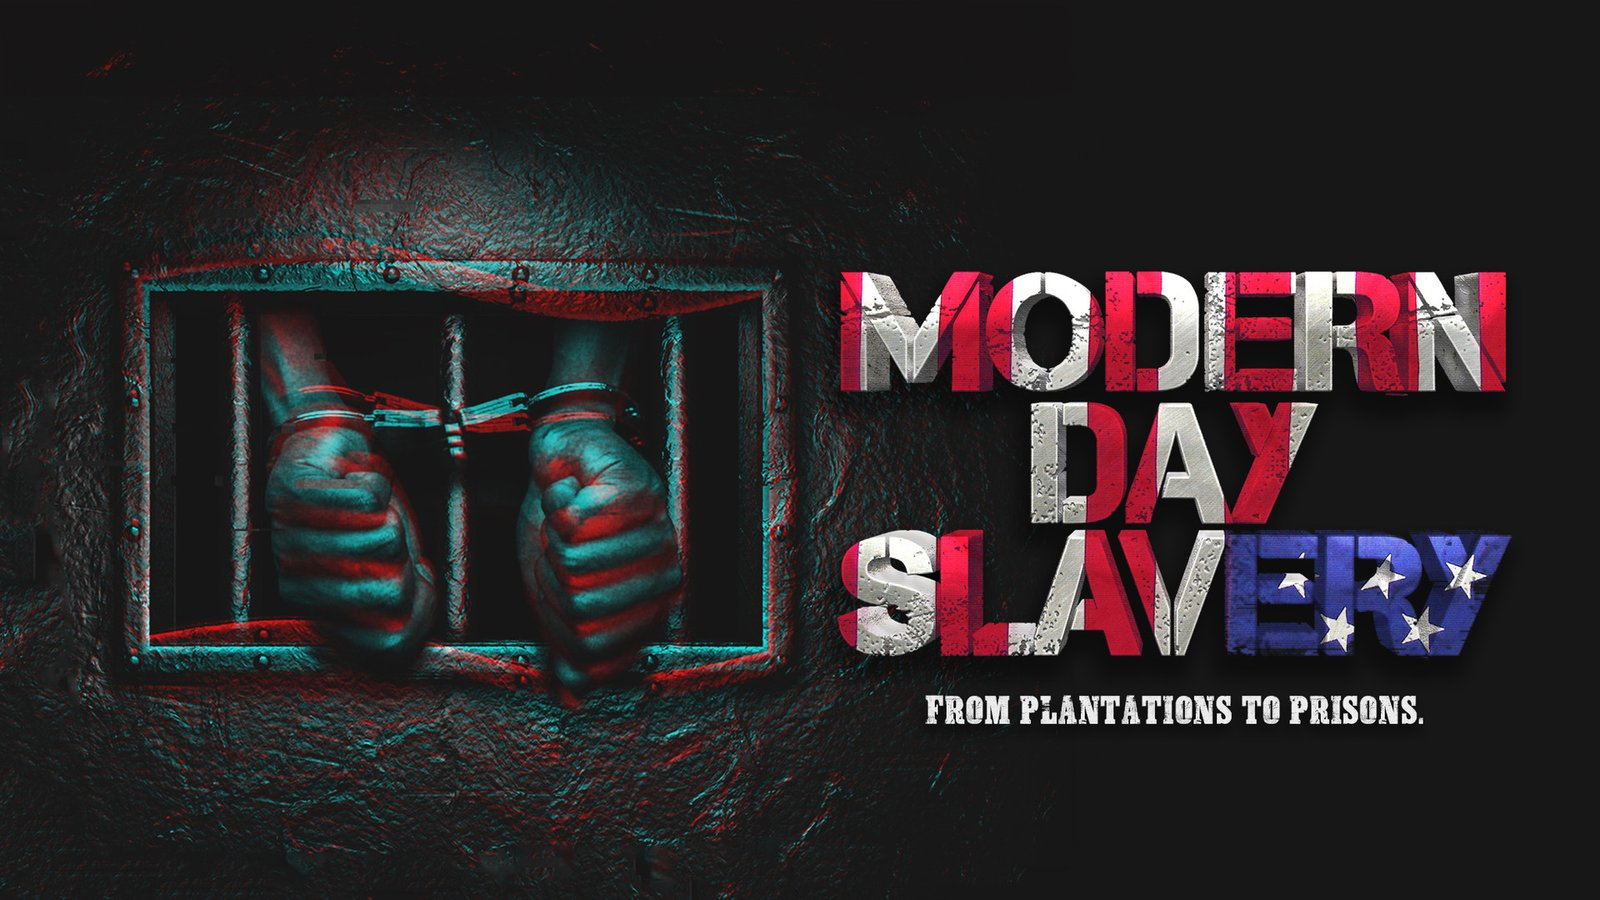 Modern Day Slavery: From Plantations to Prisons